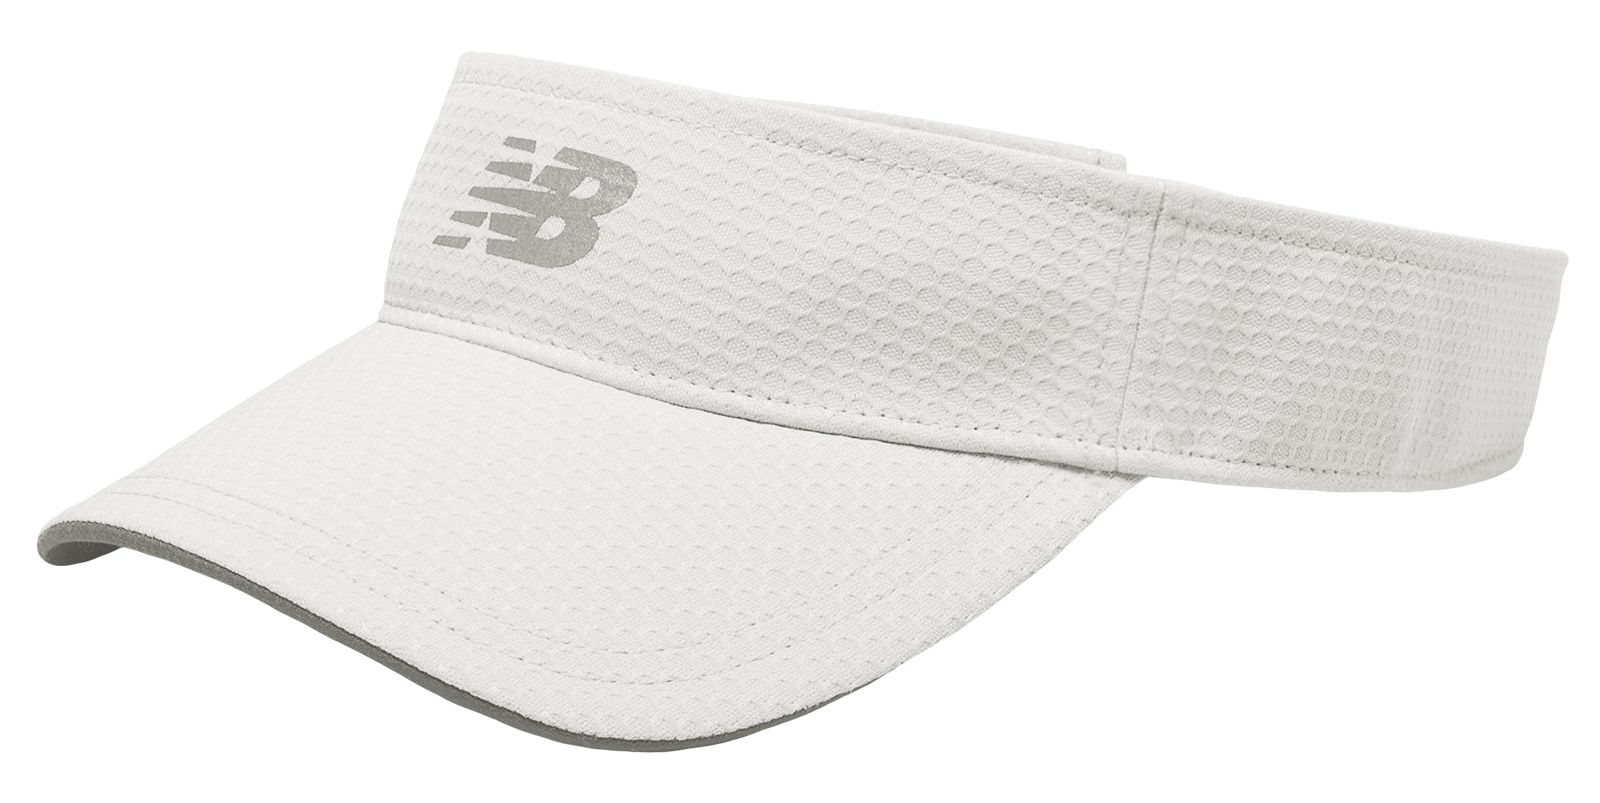 NB Performance Visor, White with Silver Mink